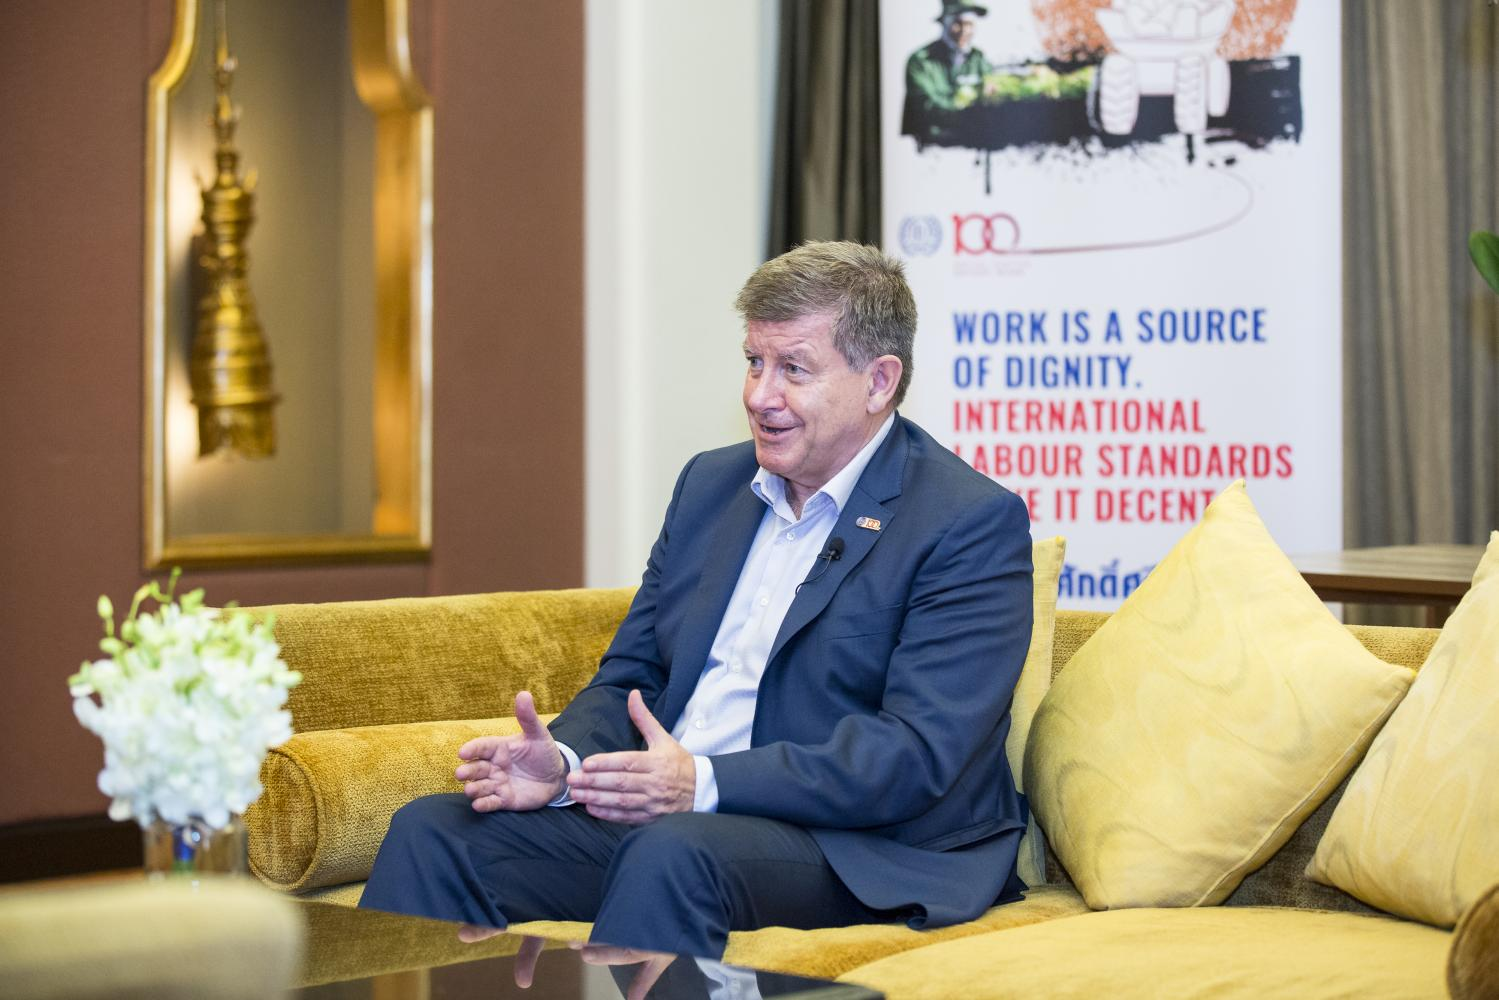 Guy Ryder, director-general of the International Labour Organisation, speaks during an exclusive interview with the 'Bangkok Post'. (Photo by Alisa Suwanrumpha)